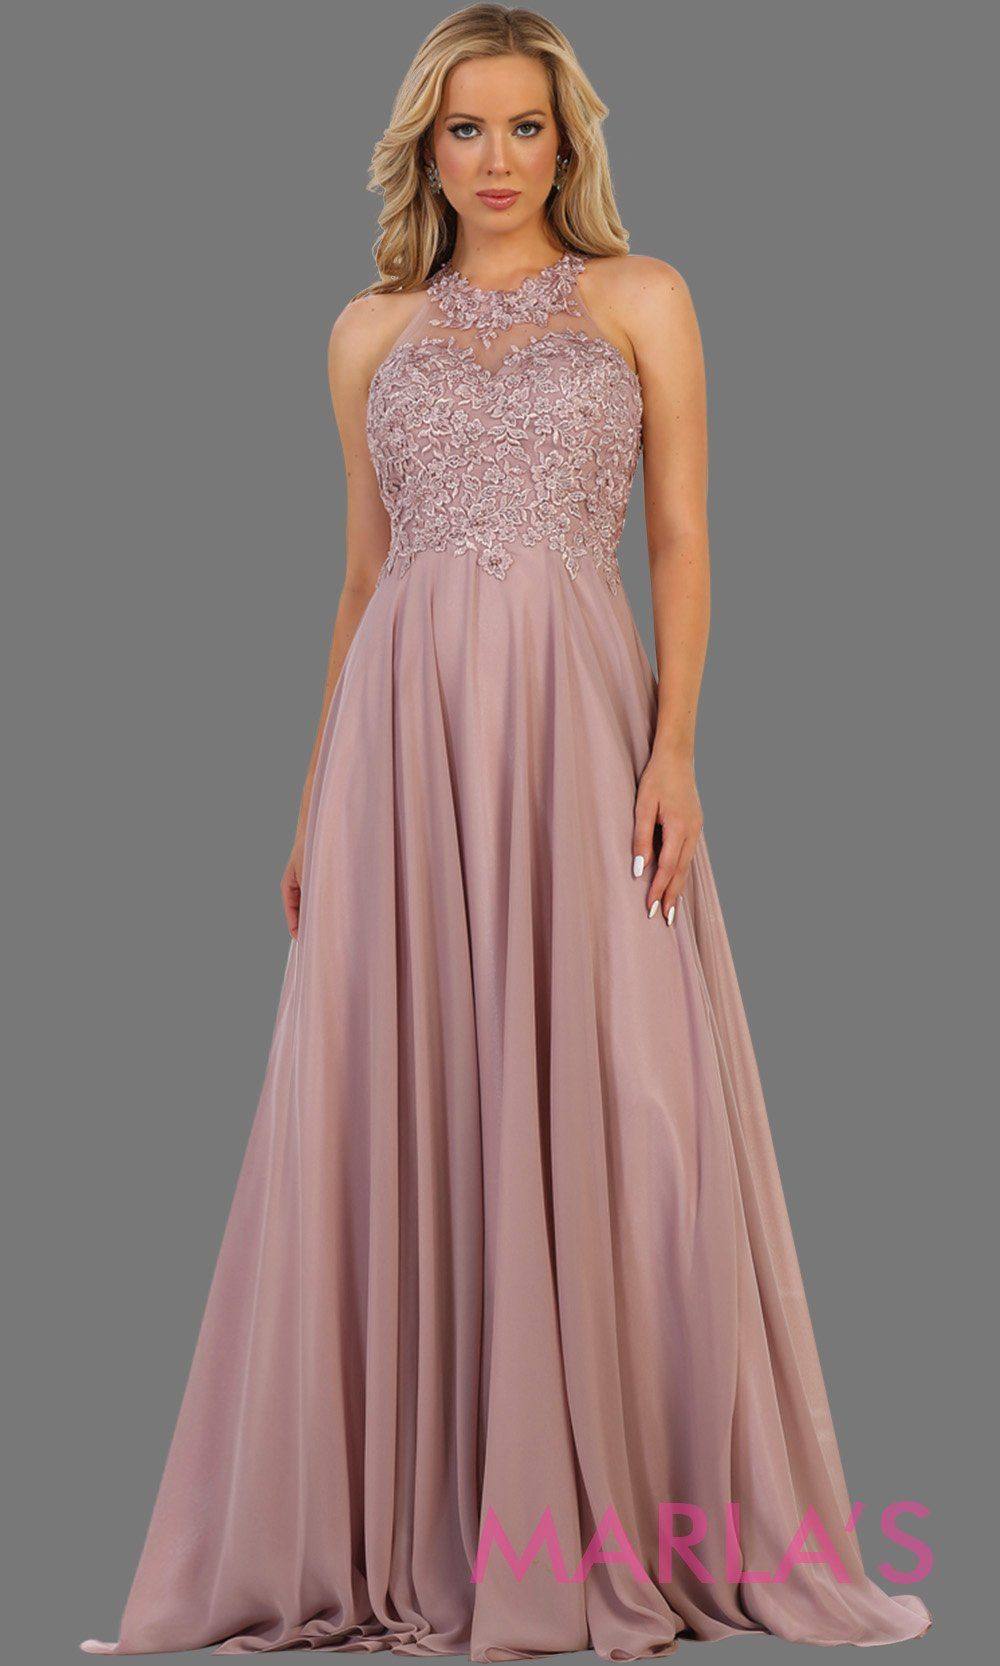 Long dusty rose flowy high neck dress with lace top and open back. Perfect for mocha prom dress, wedding guest dress,formal party evening gown, destination wedding, bridesmaid dress. Available in Plus Sizes.